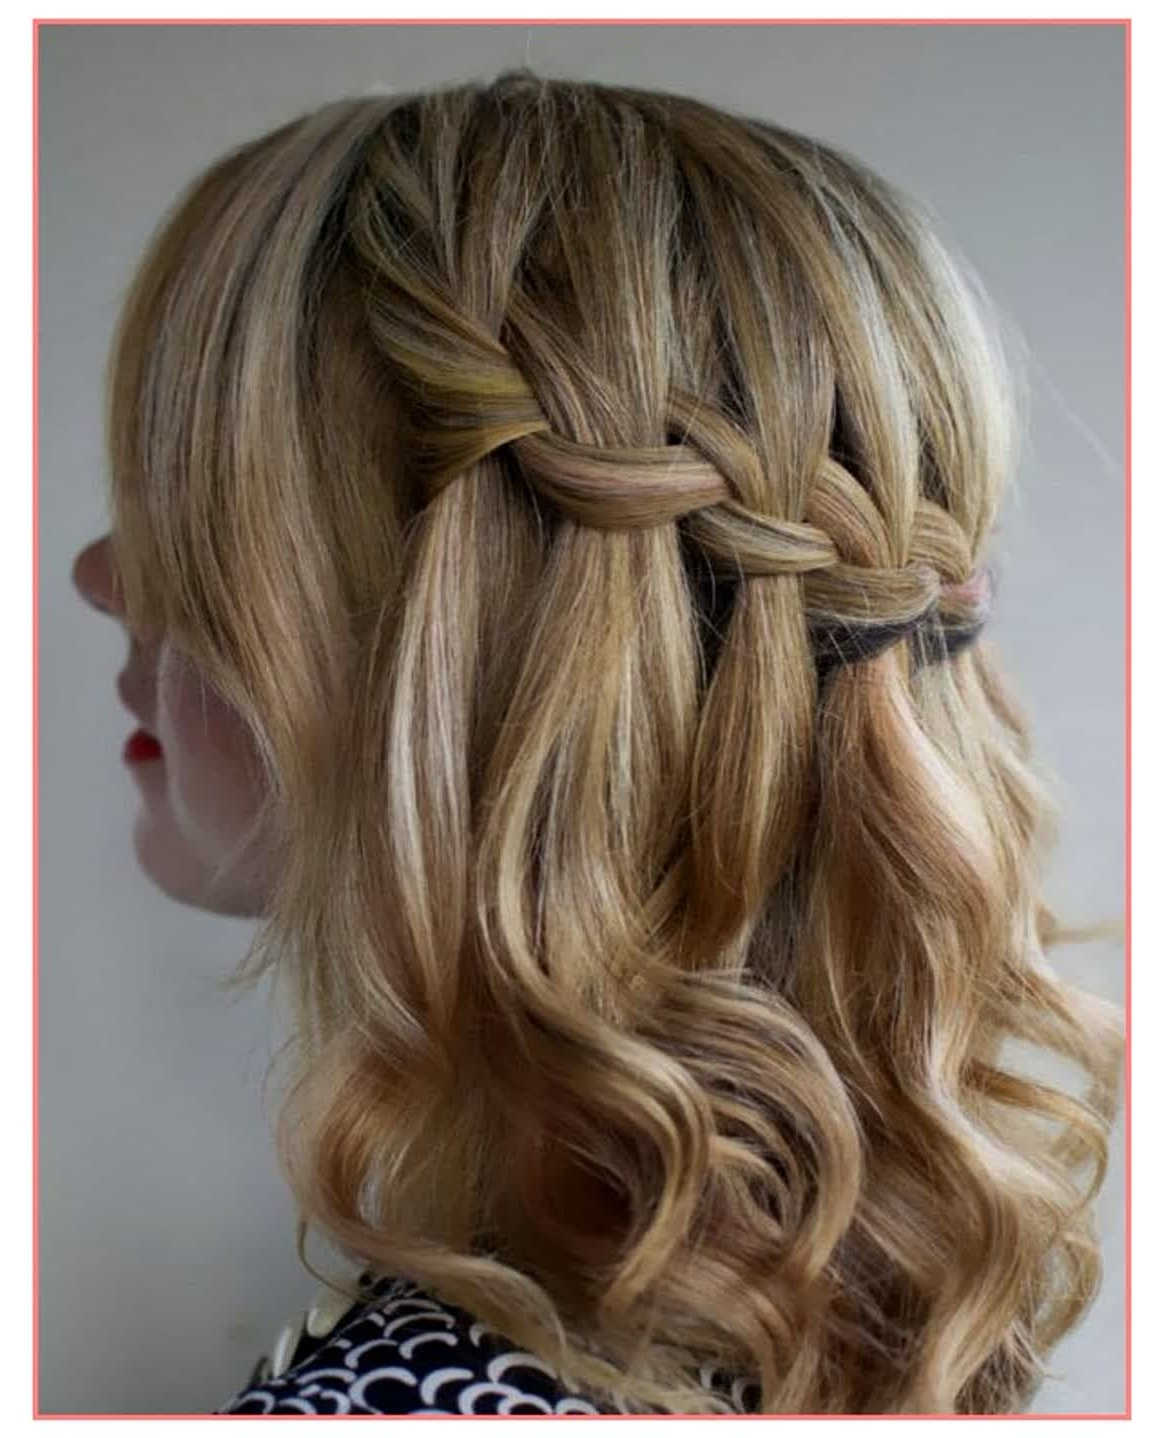 Awesome Hairstyles Quick Wedding Hairstyles For Short Hair – Best Throughout Popular Quick Wedding Hairstyles (View 6 of 15)